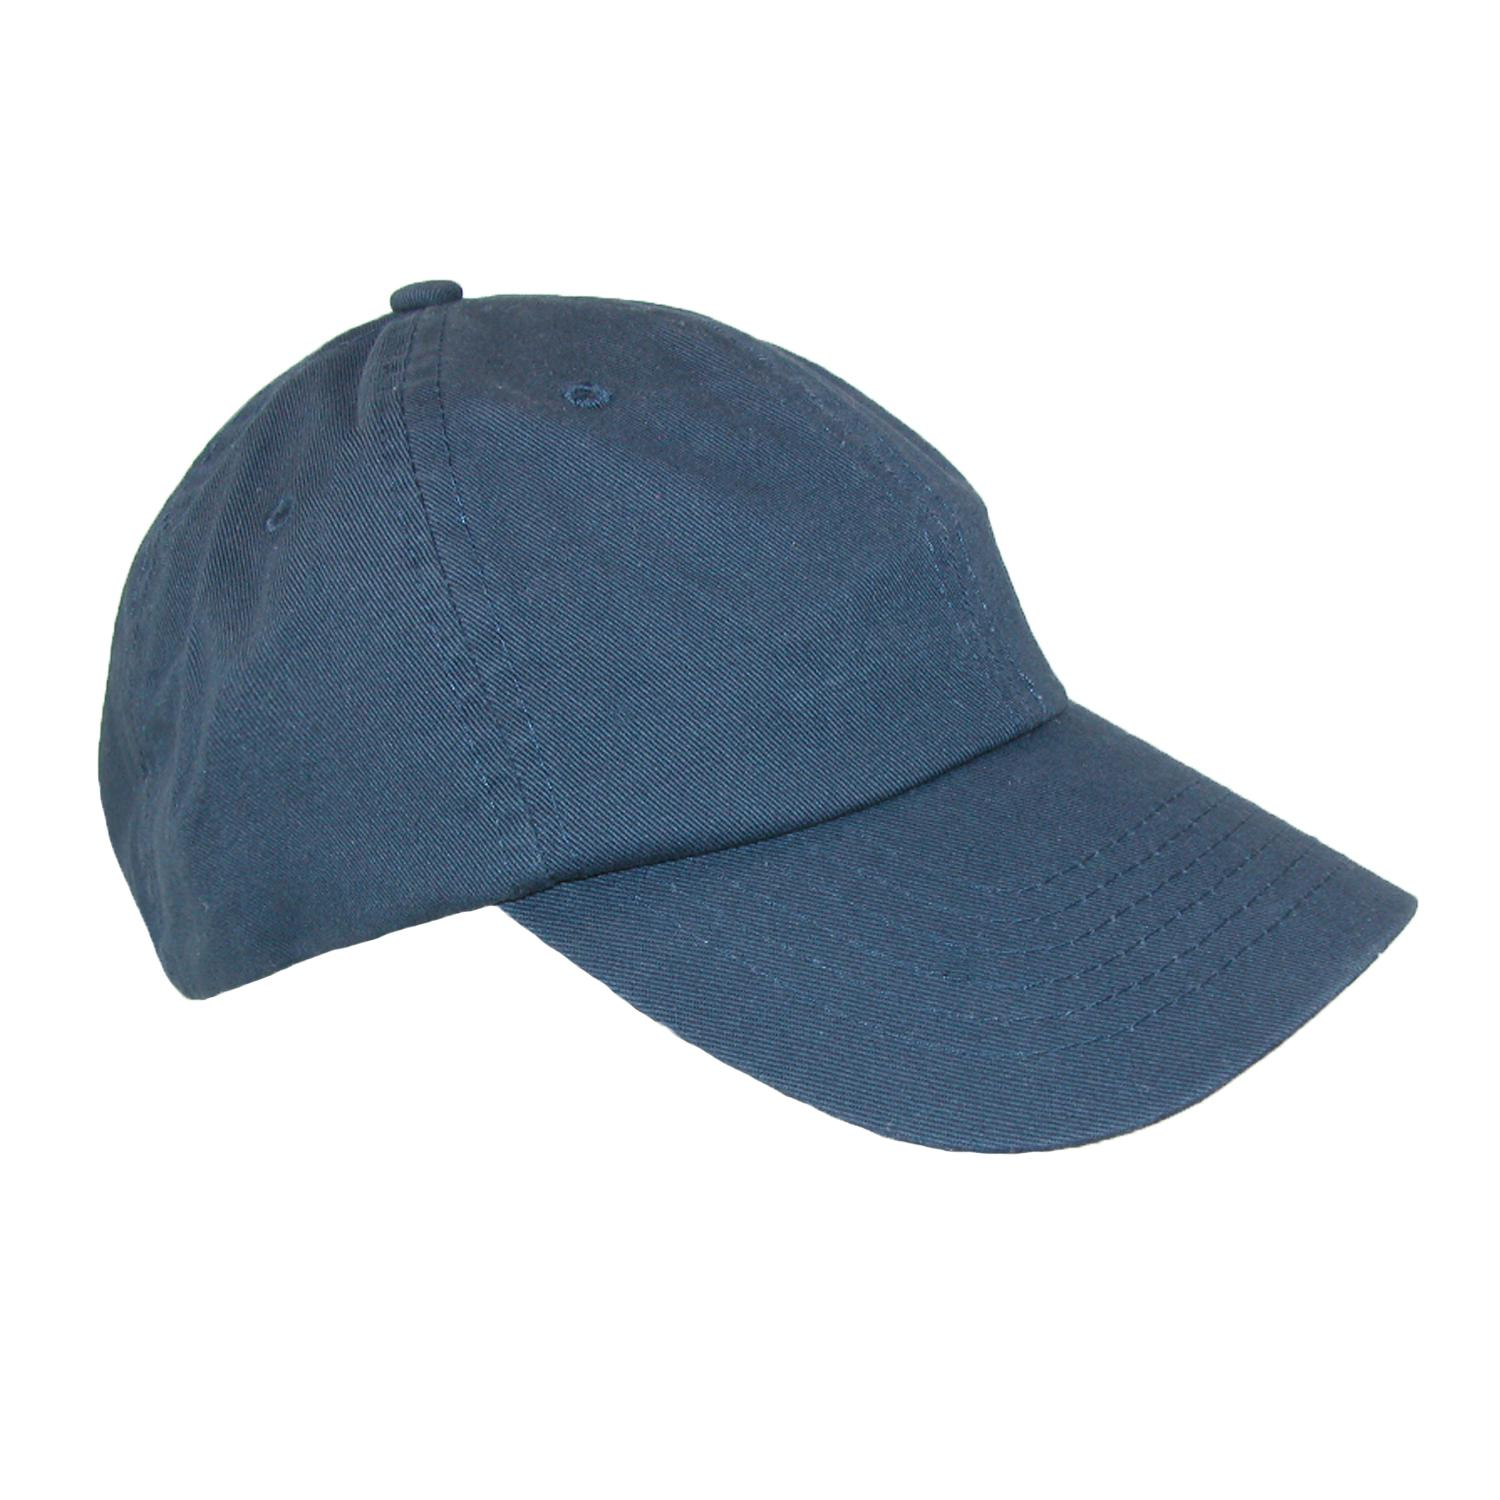 Dorfman_Pacific_Classic_Cotton_Basic_Solid_Sports_Baseball_Cap_-_Navy